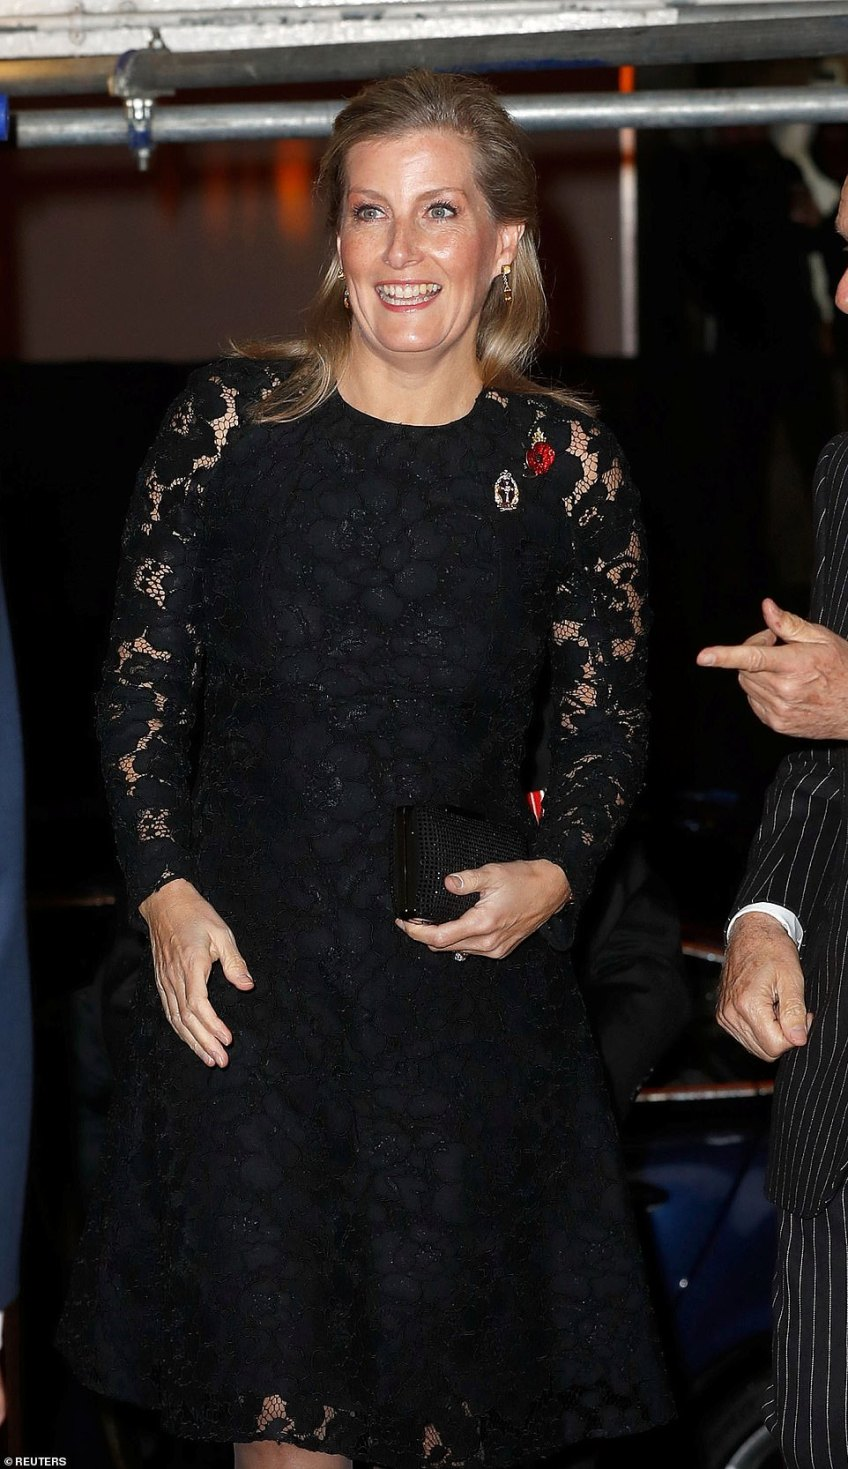 Britain's Sophie, Countess of Wessex attends the Royal British Legion Festival of Remembrance tonight in Albert Hall